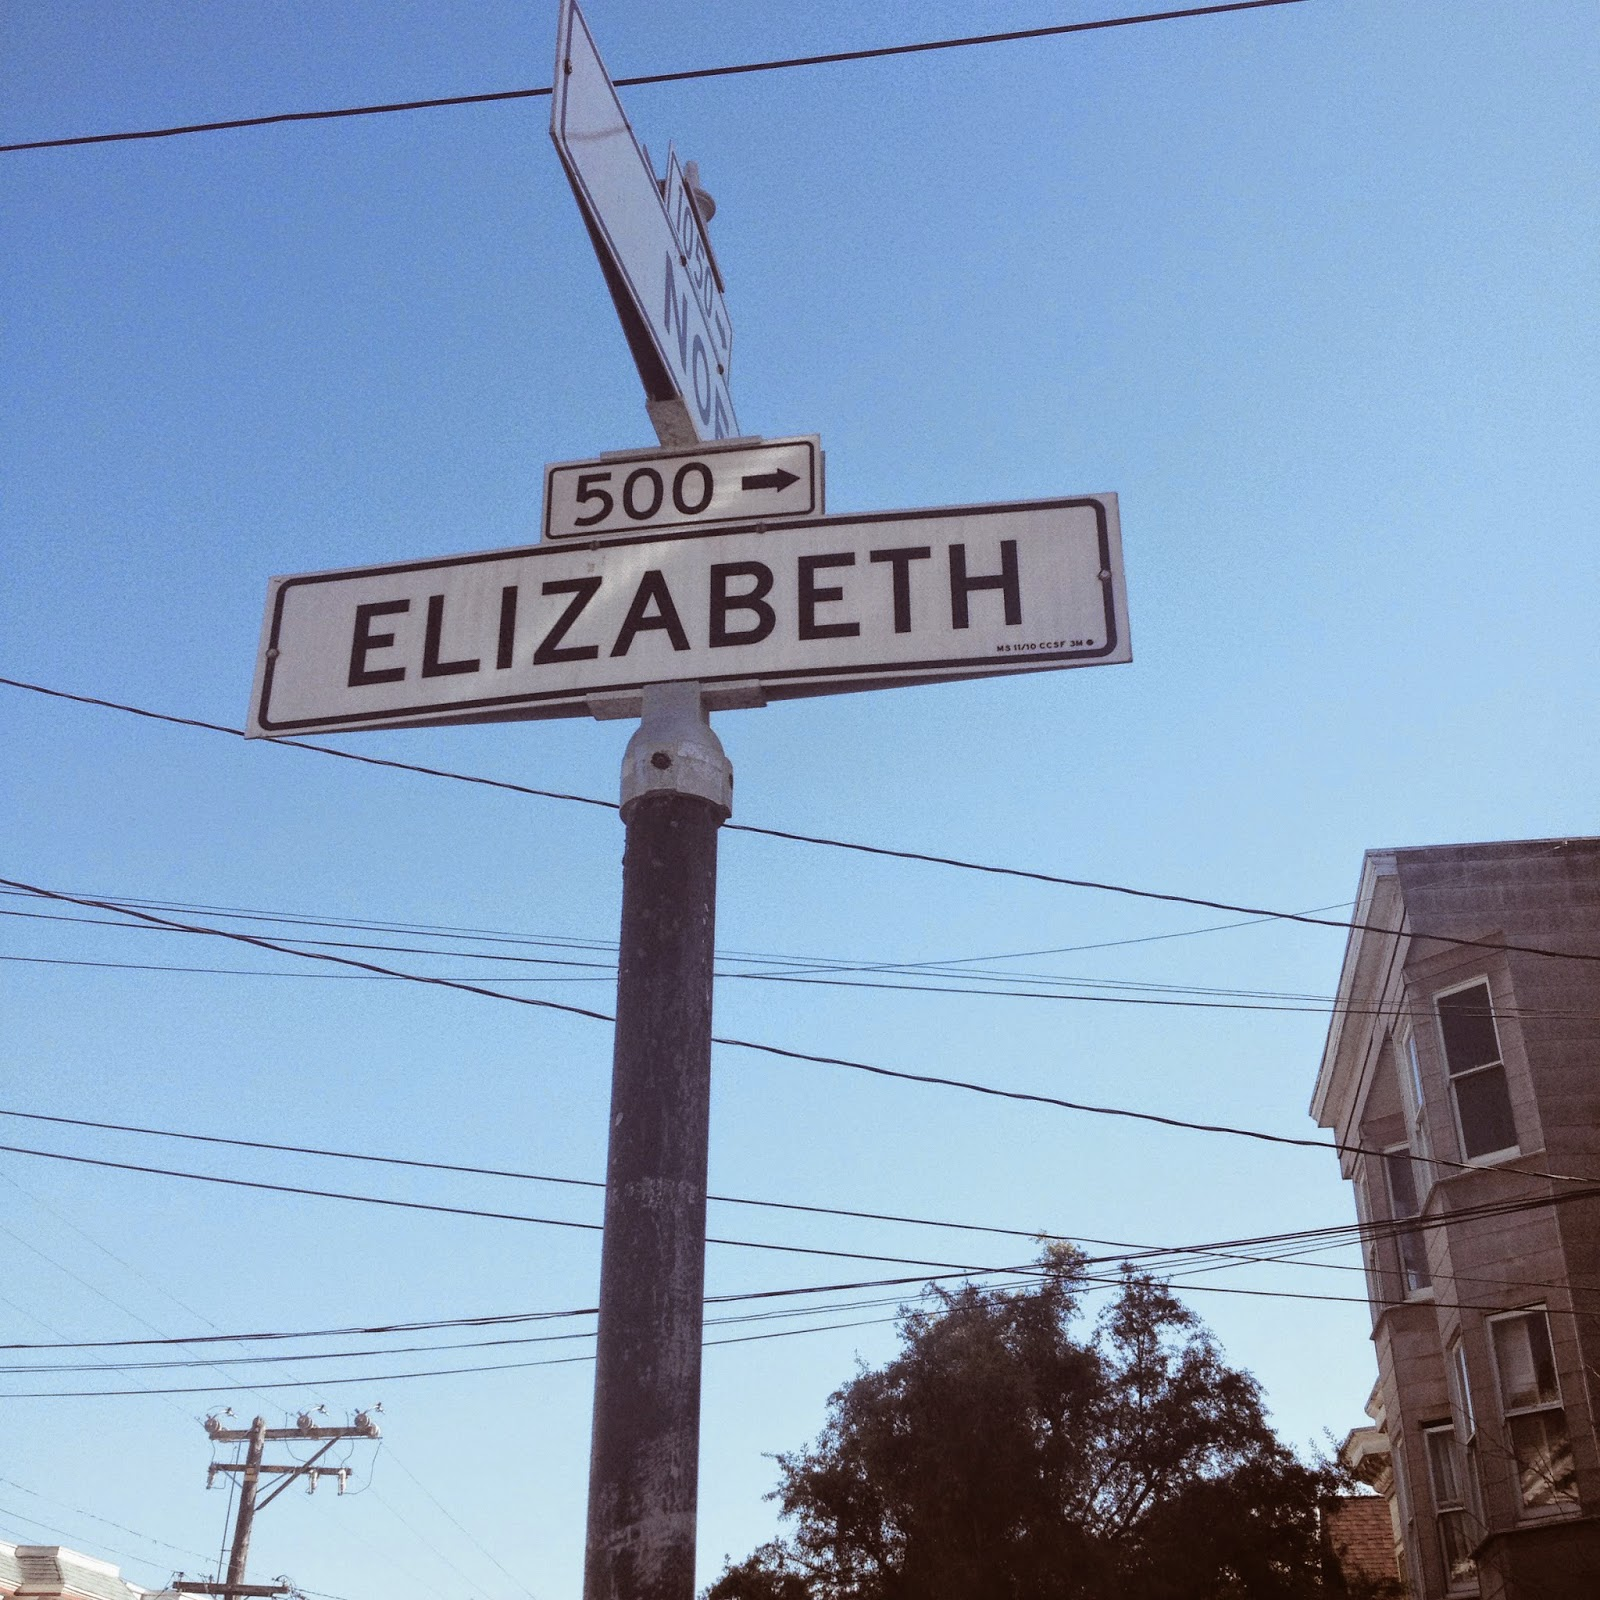 Elizabeth street sign in San Francisco